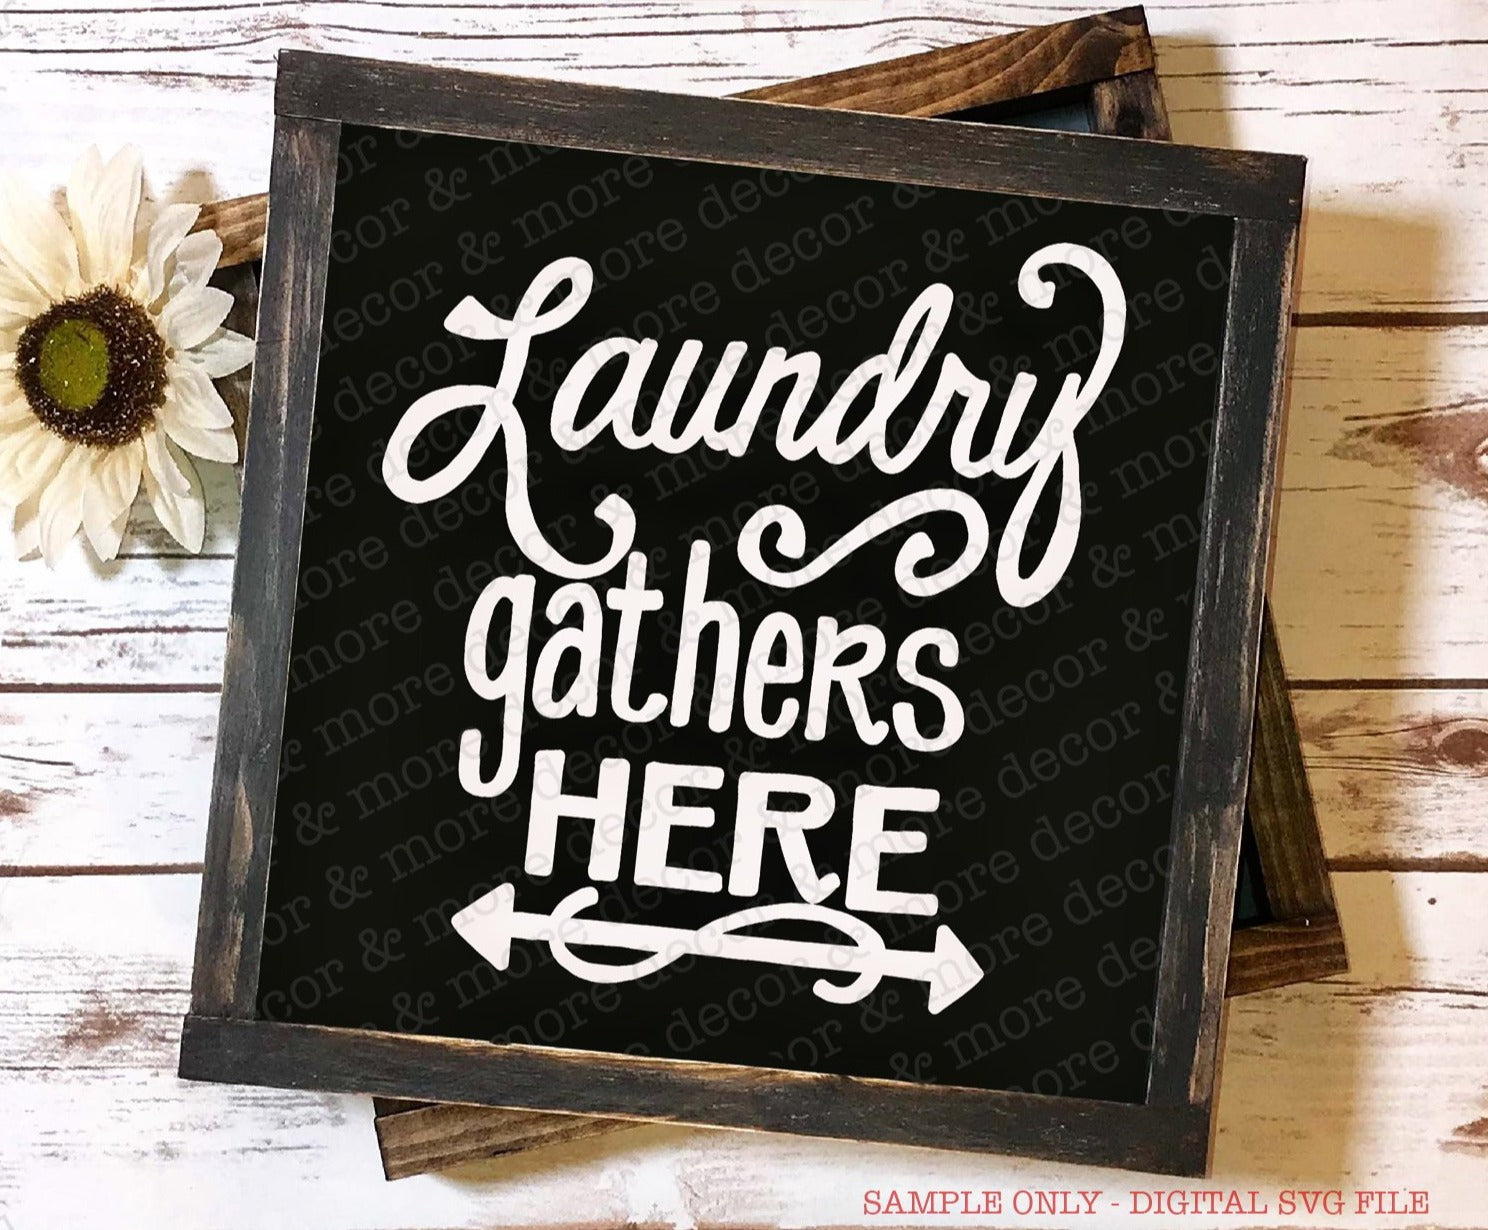 LAUNDRY ROOM SVG, Laundry Gathers Here SVG, Laundry Room Cut File, SVG Laundry Saying, Laundry Quote Svg, Laundry Room Sign, Svg Files for Cricut, Svg